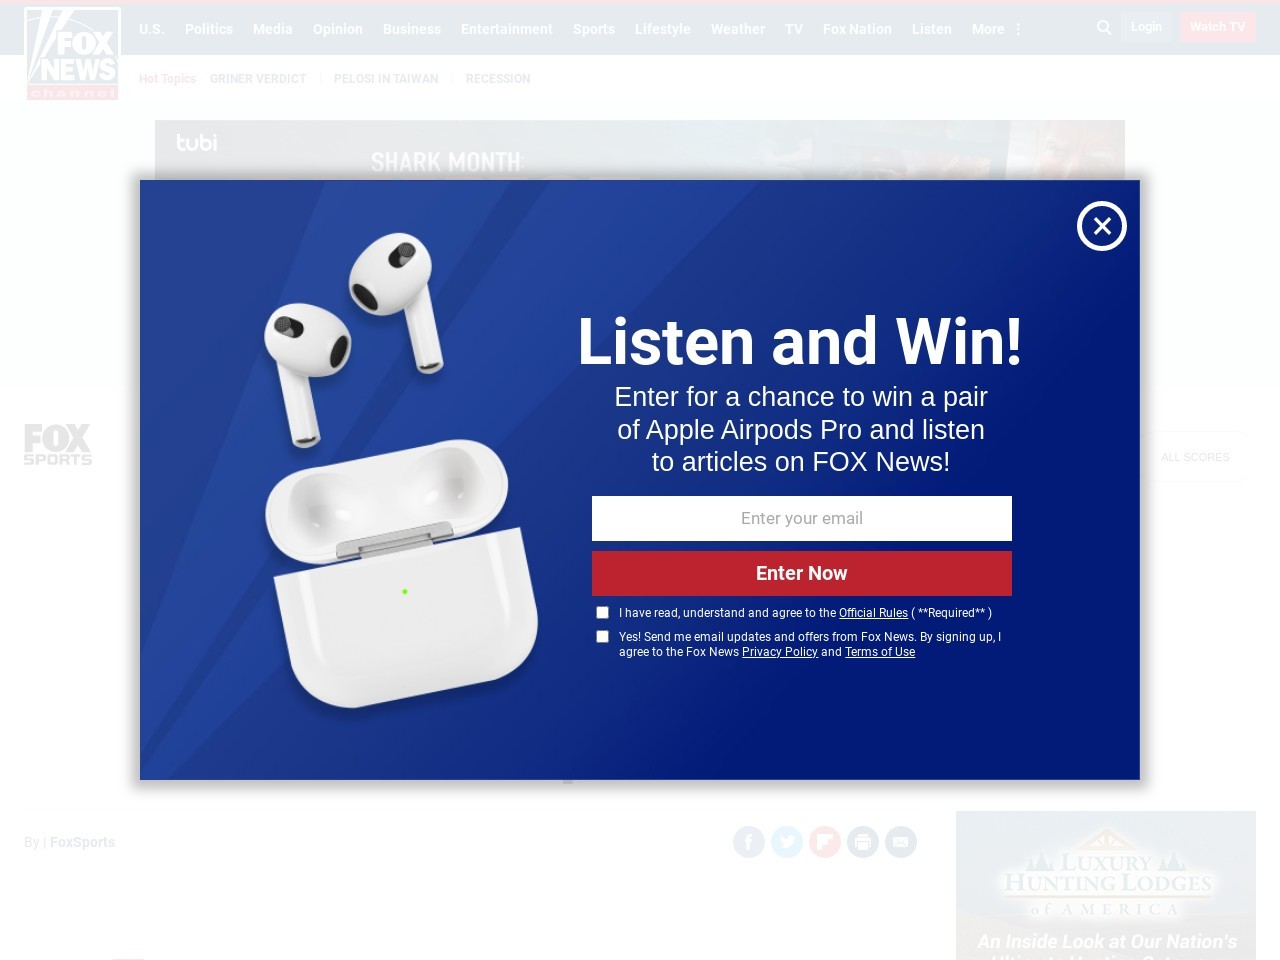 Another chance: Tom Coughlin gets one more shot to get Jaguars to Super Bowl